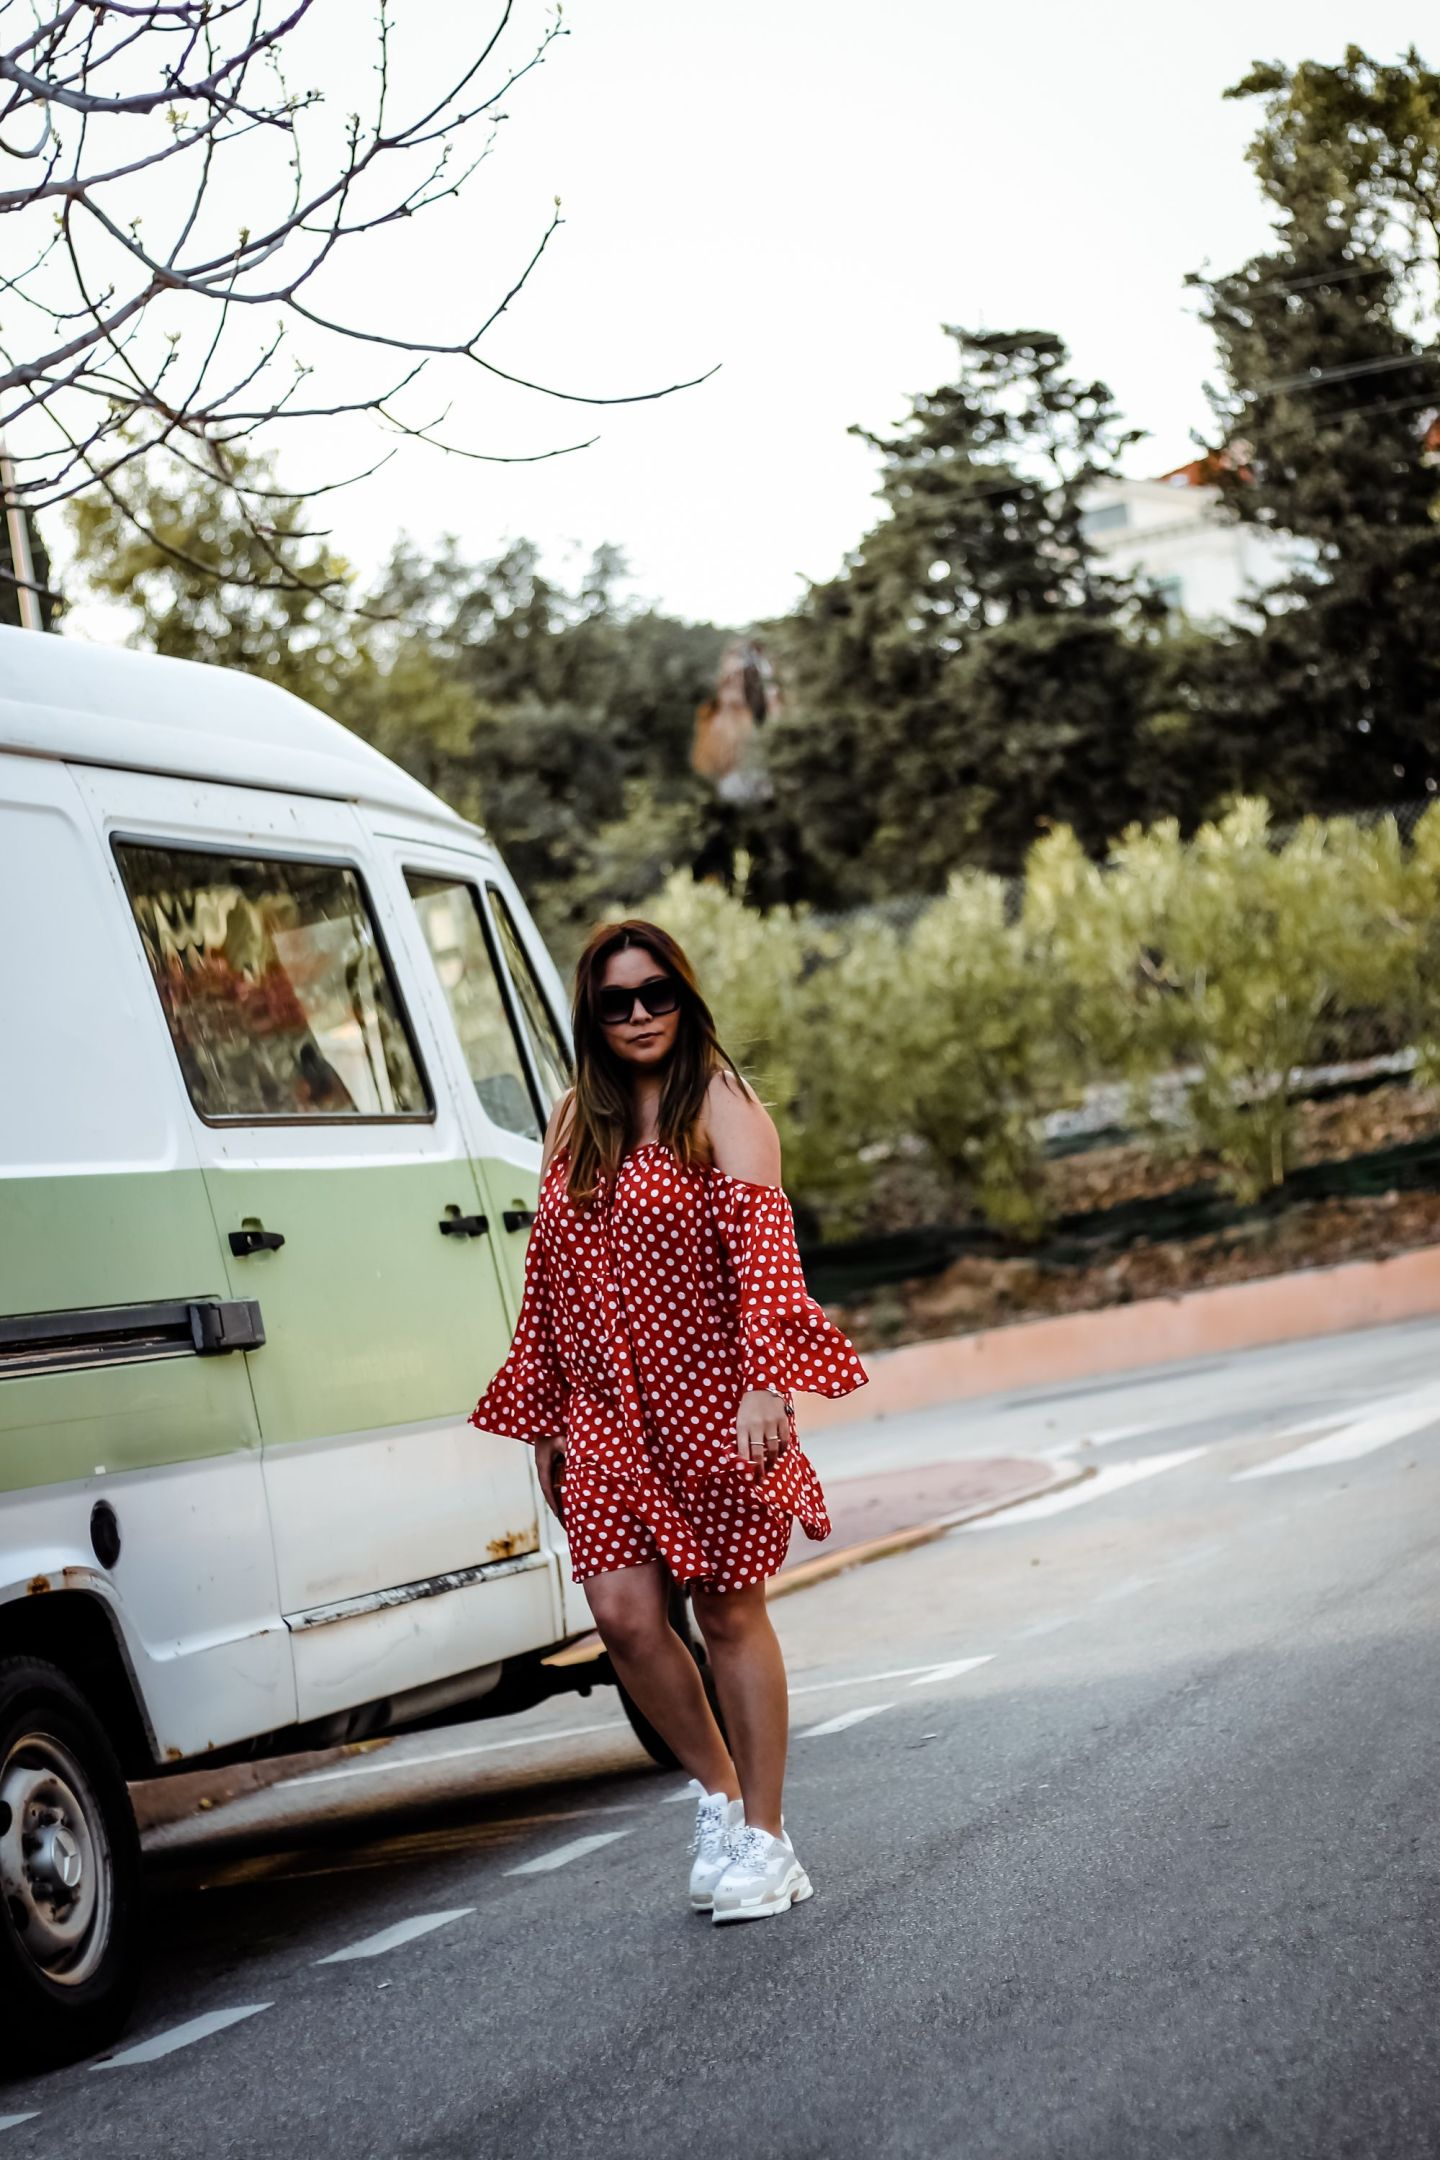 the grren anans, blog travel, polka dot dress, robe pois, blogueuse française, blogueuse influente, gypsy style, obvious sneakers, inspiration balanciaga, ugly shoes, dresslily, tularosa